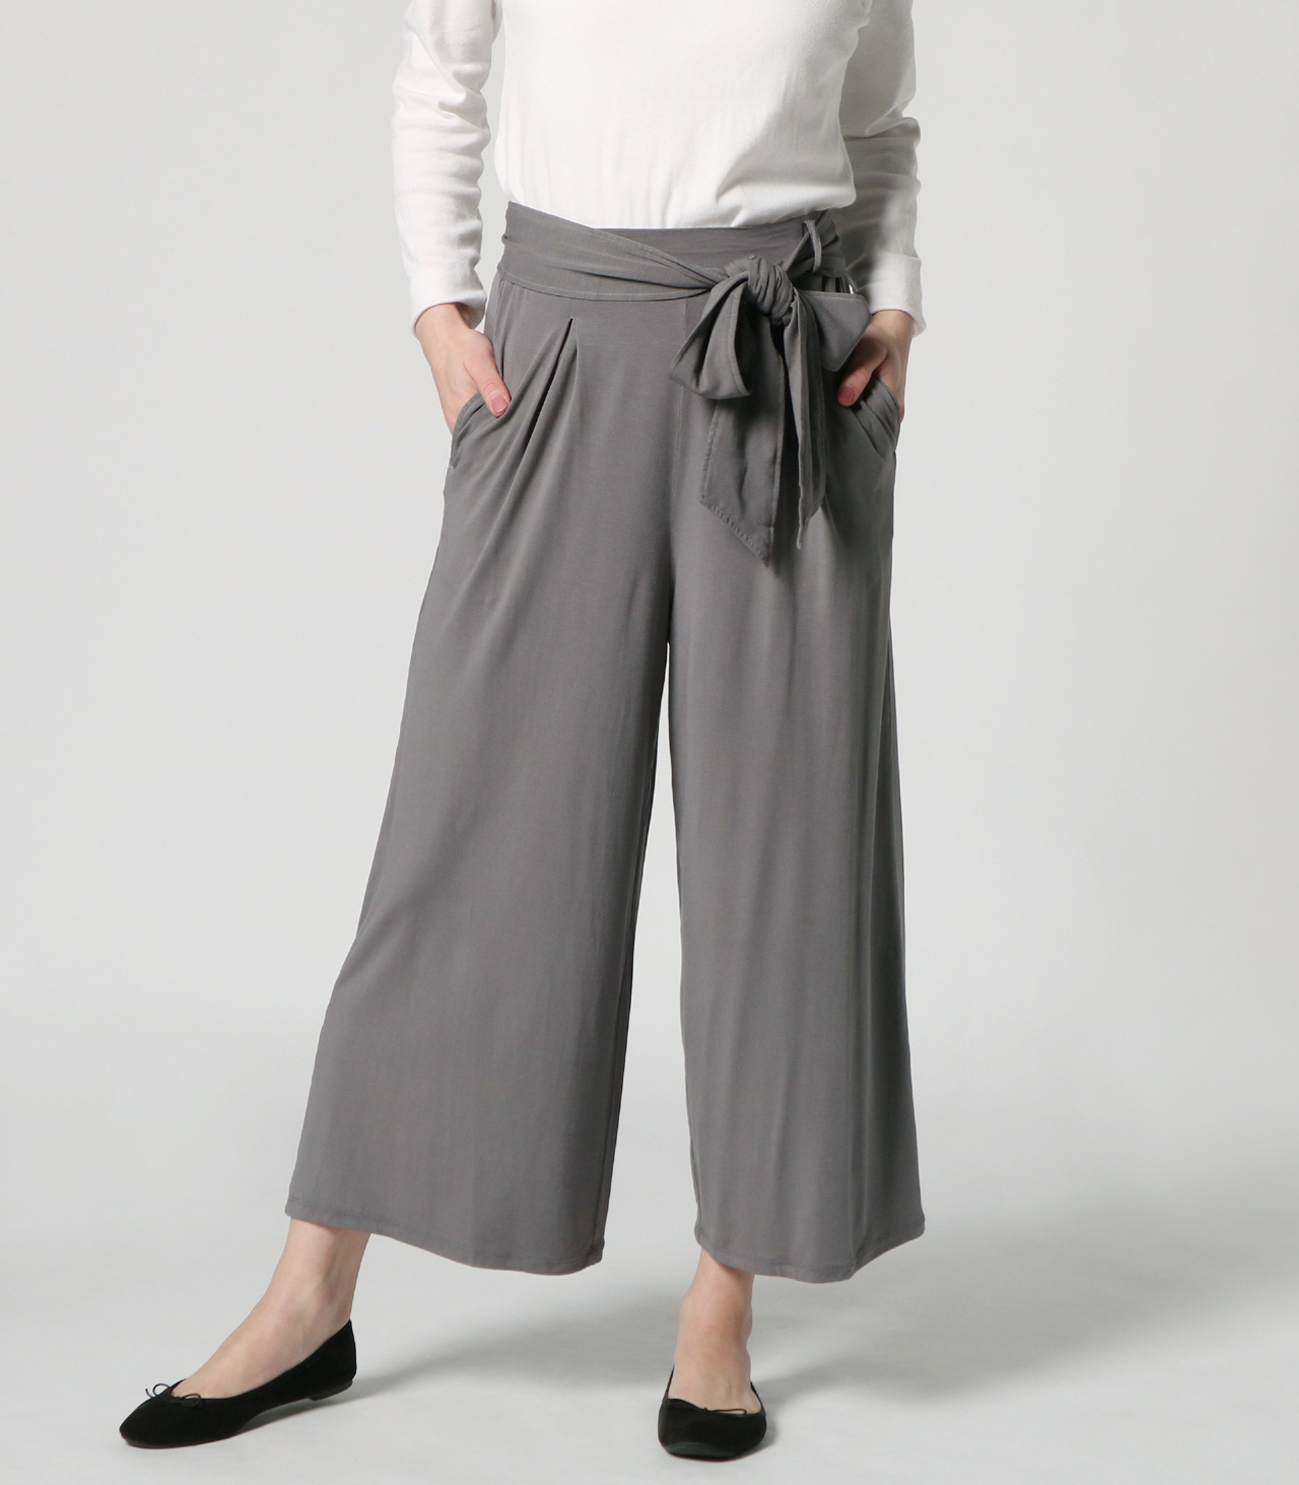 travel line tuck wide pant 詳細画像 shade 6